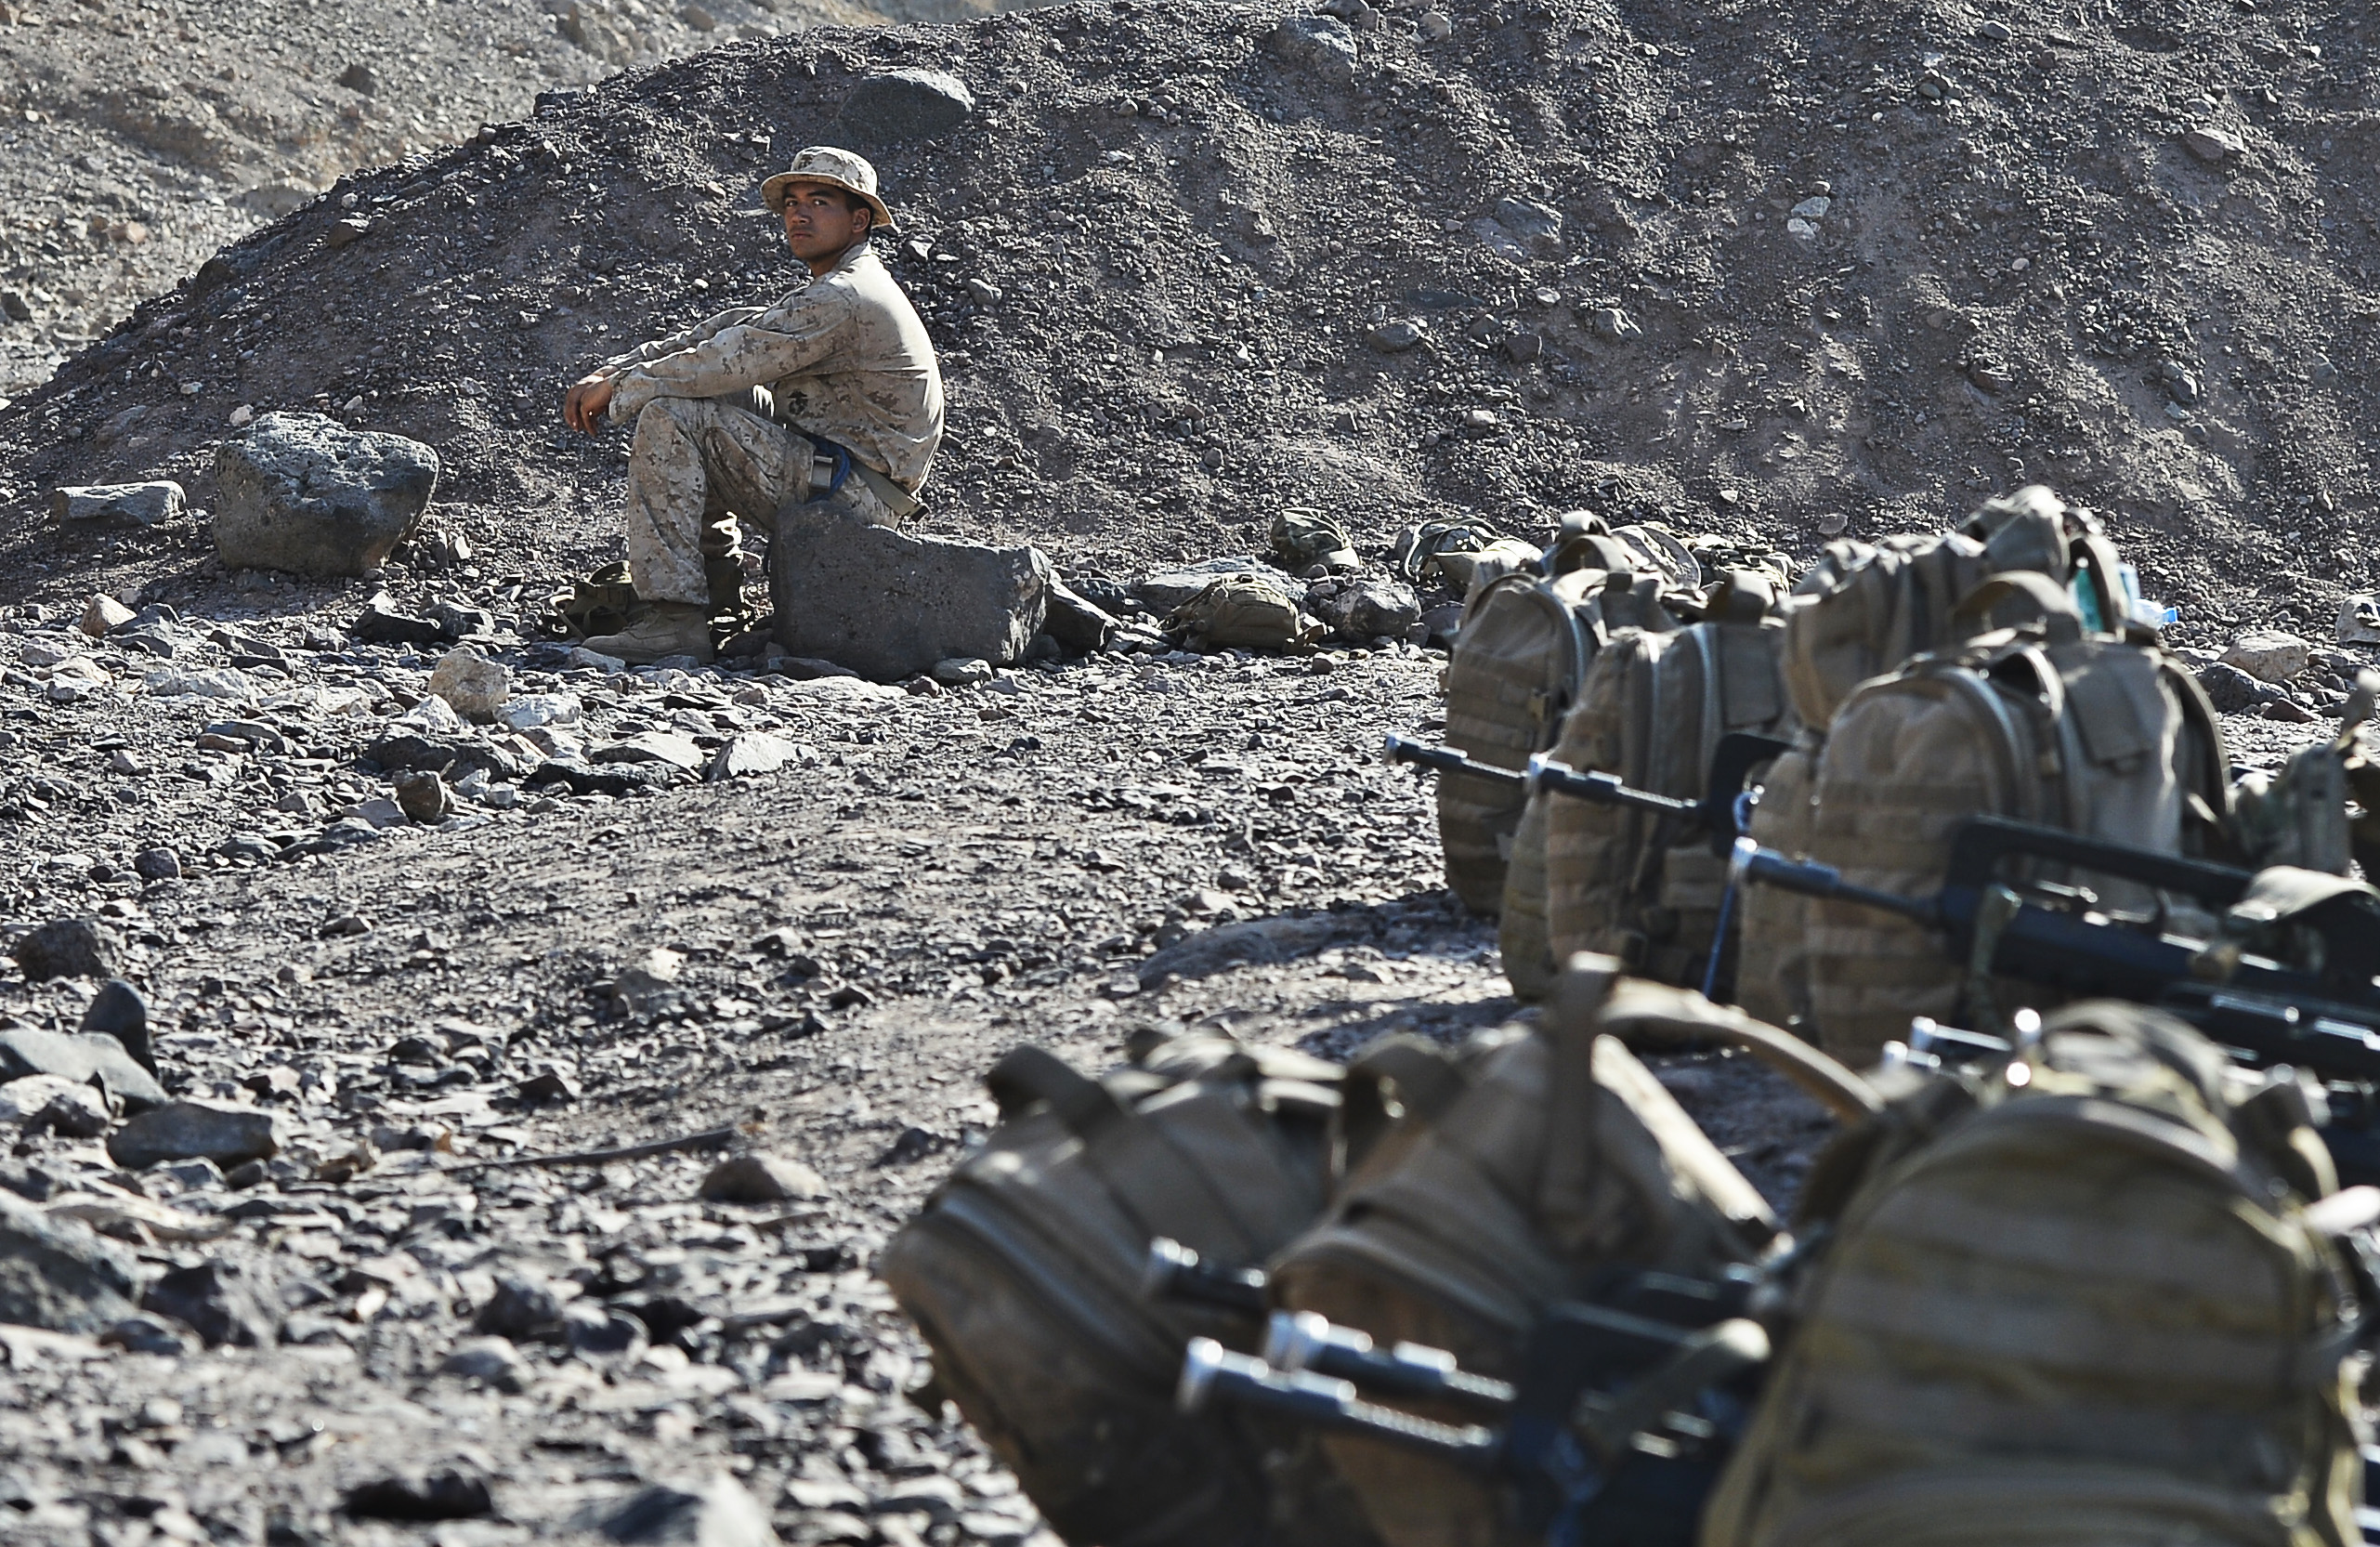 A U.S. Marine watches service members traverse, repel and climb a rope's course during the French Desert Survival Course, near Arta Beach, Djibouti, Sept. 30, 2015. U.S. Army Civil Affairs Battalion soldiers, assigned to Combined Joint Task Force-Horn of Africa, French Army soldiers from the 5th Overseas Combined Arms Regiment, and members of 15th Marine Expeditionary Unit, learned to fight, survive and navigate Djibouti's desert, earning the French's desert commando badge.  (U.S. Air Force photo by Senior Airman Nesha Humes)